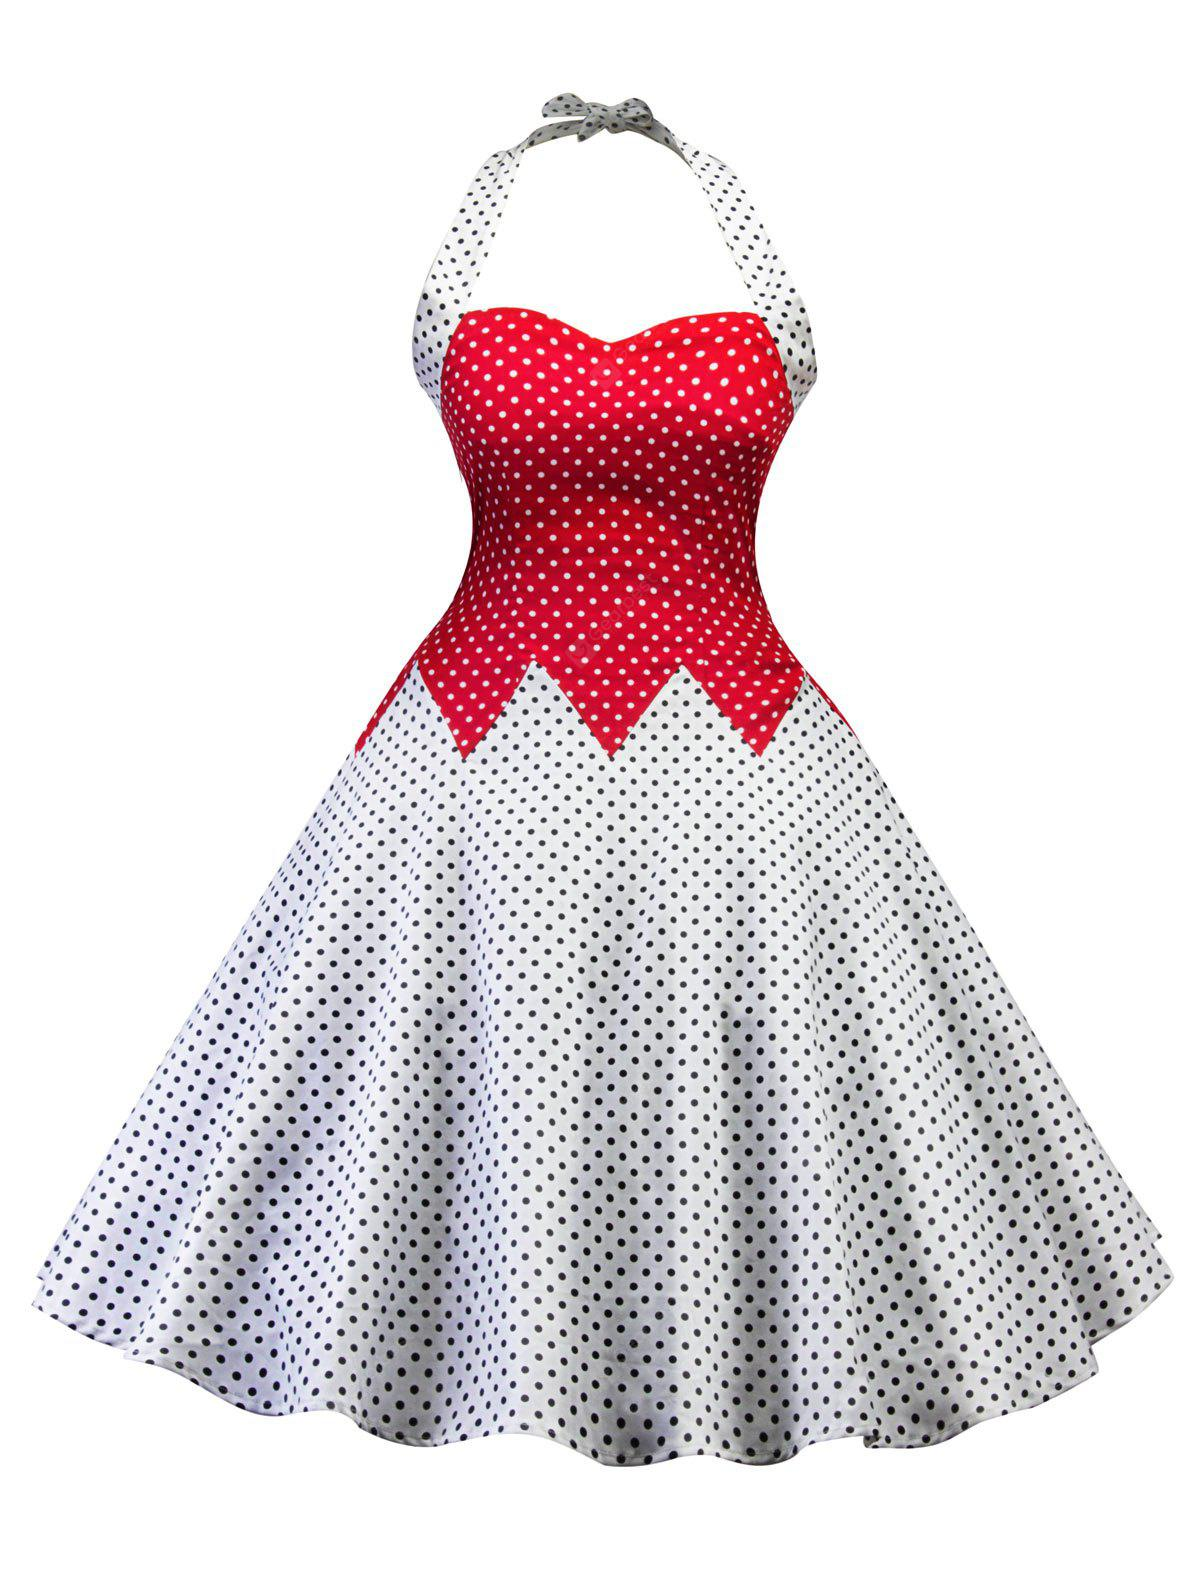 Vintage Halter Polka Dot Color Block Pin Up Dress